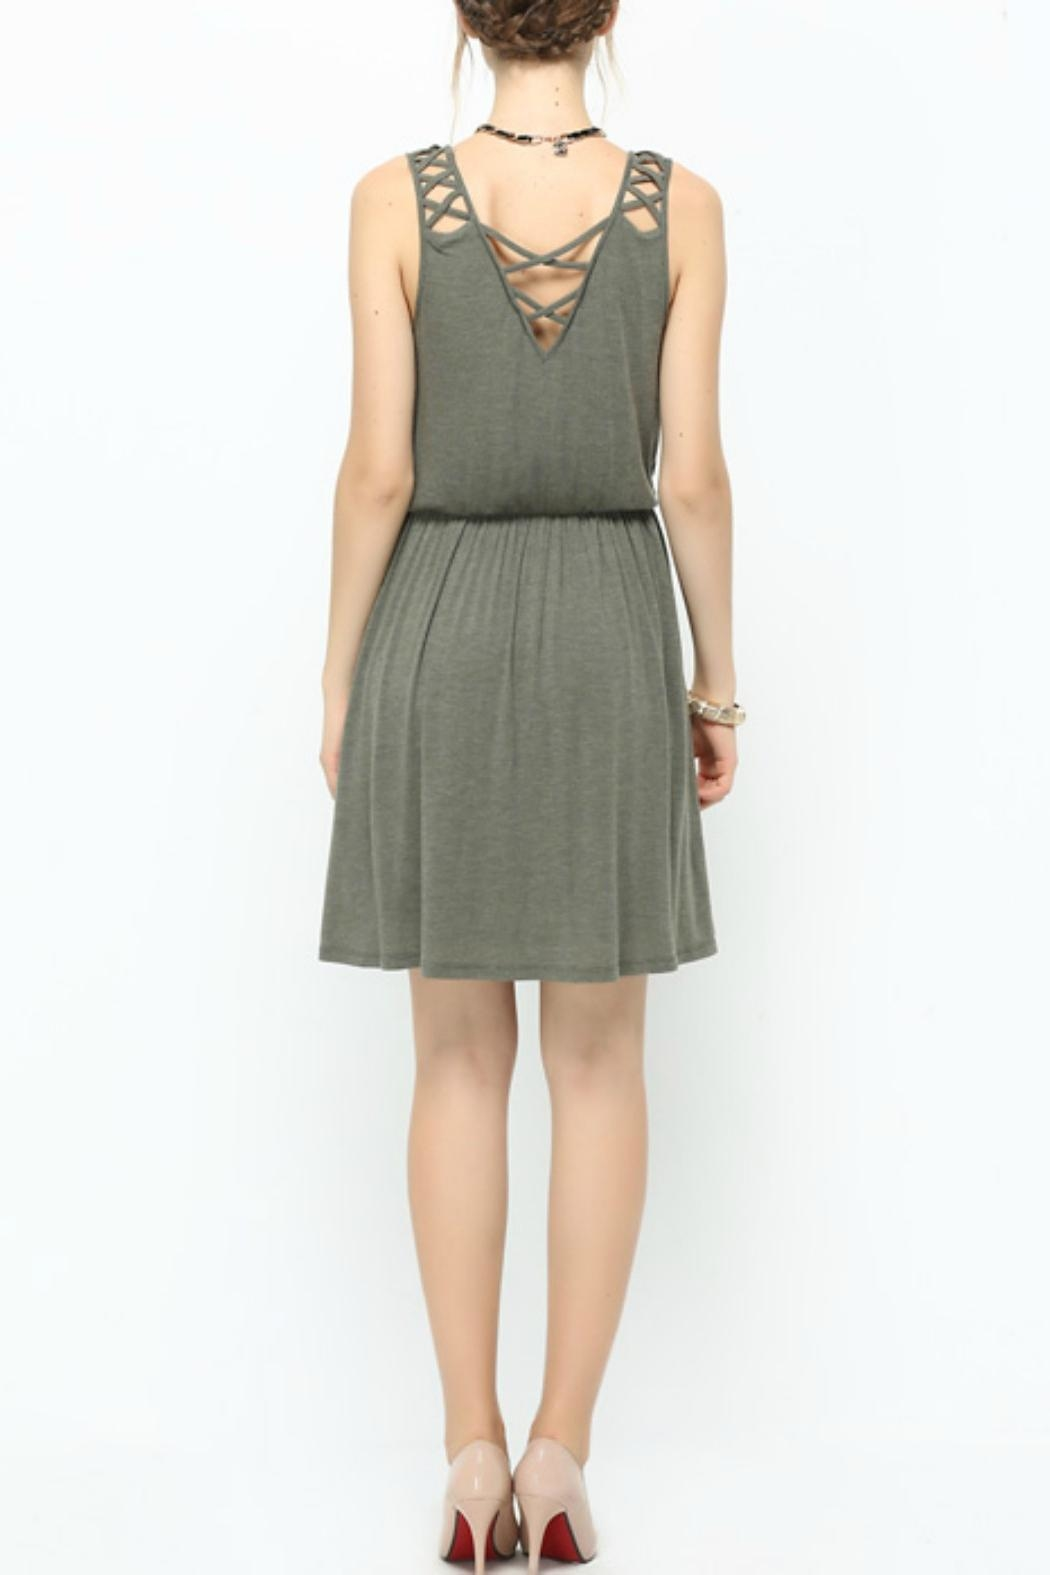 Naked Zebra Olive Latice-Trim Dress - Side Cropped Image